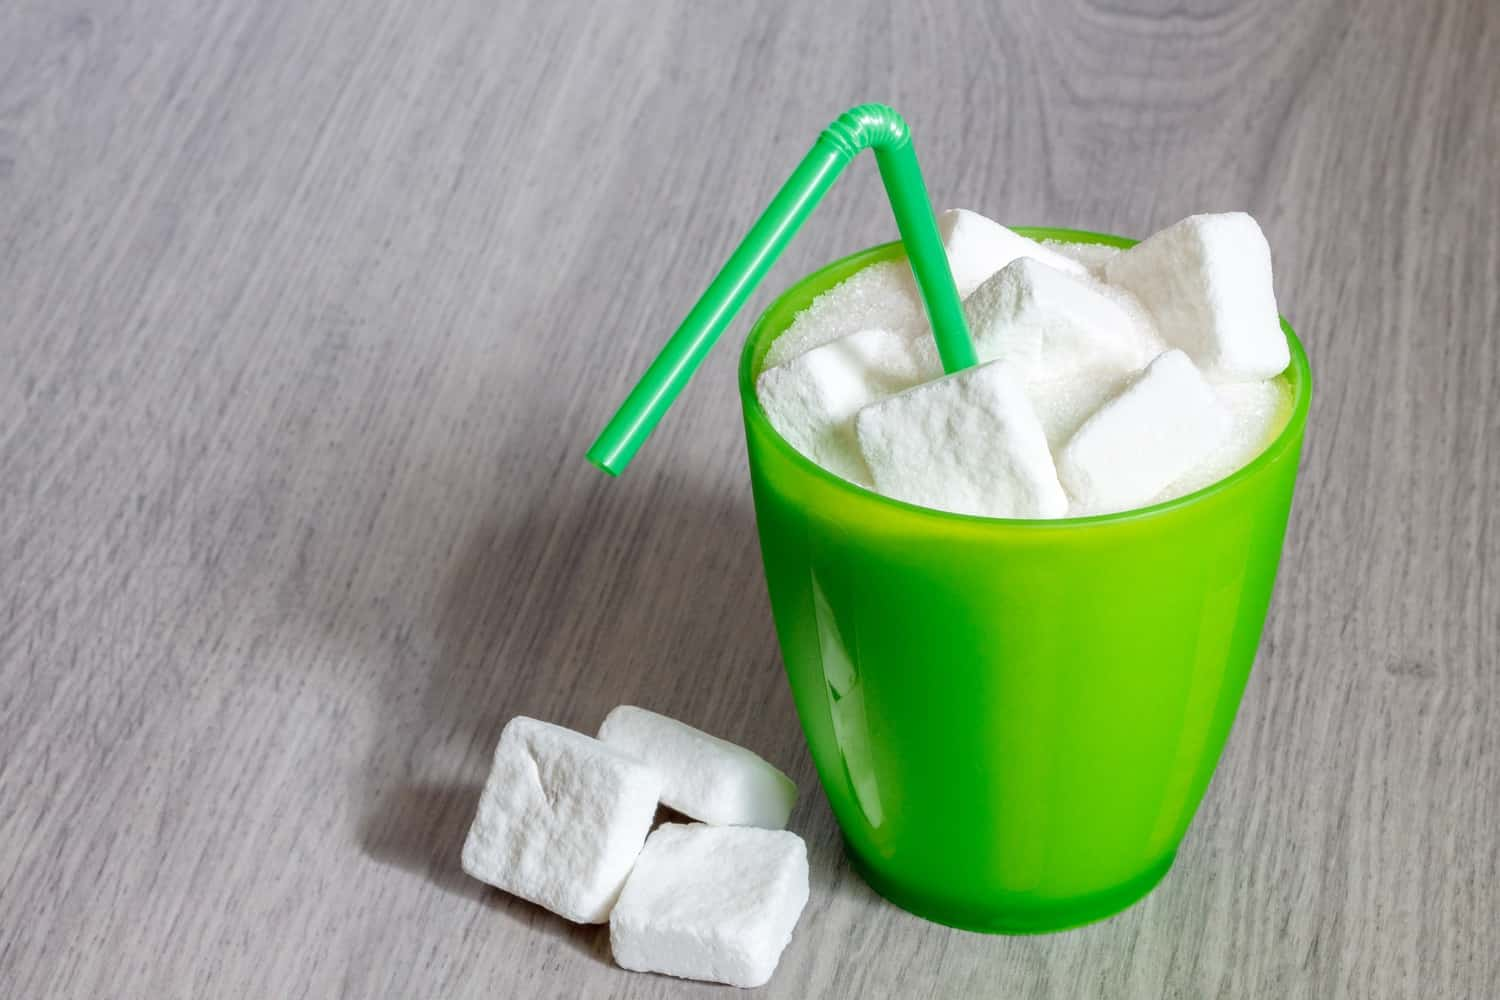 A cup of sugar cubes.